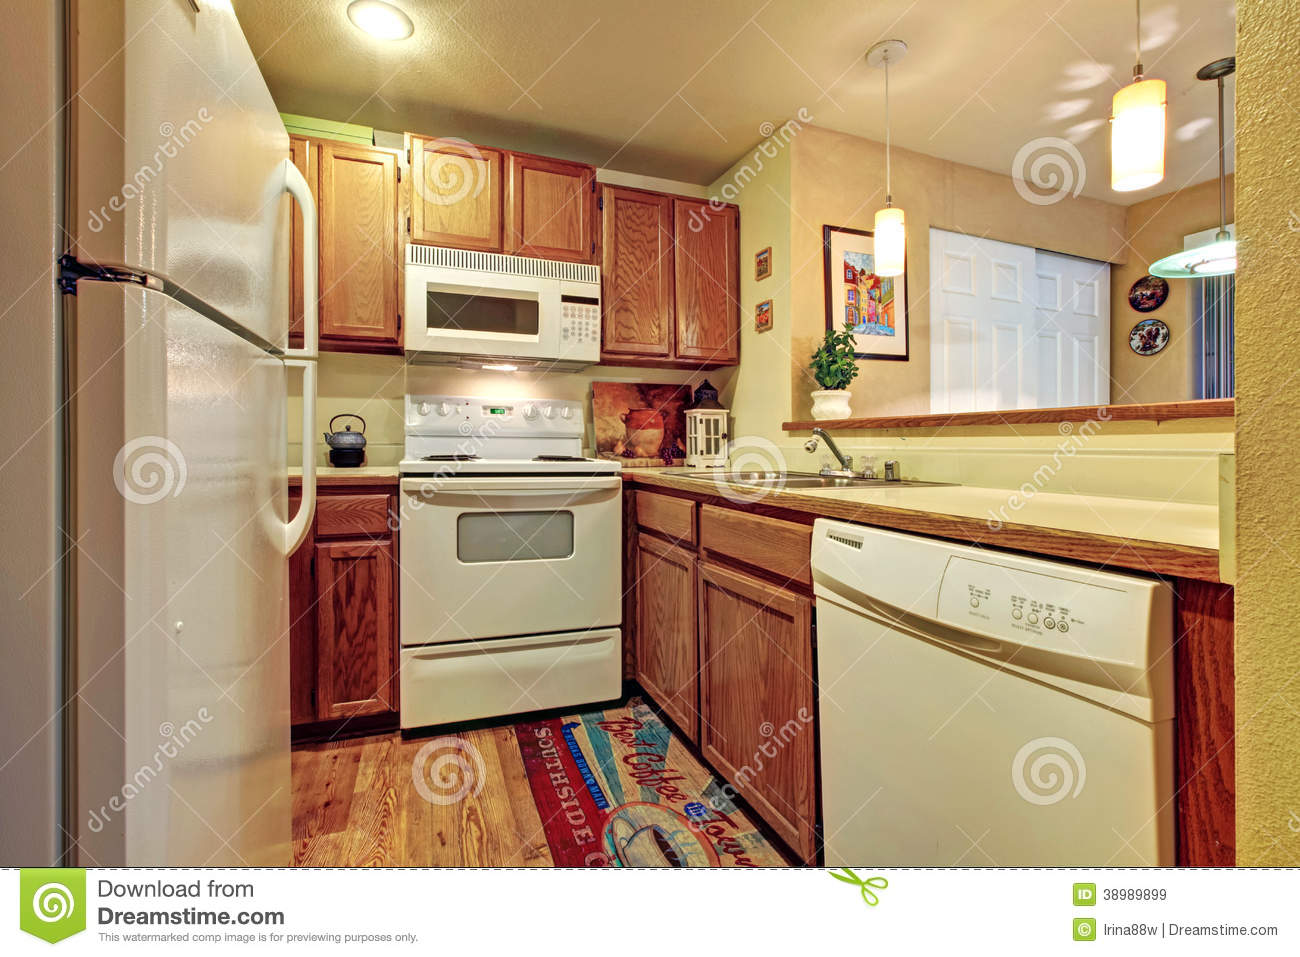 Small Simple Kitchen Room Stock Photo Image 38989899